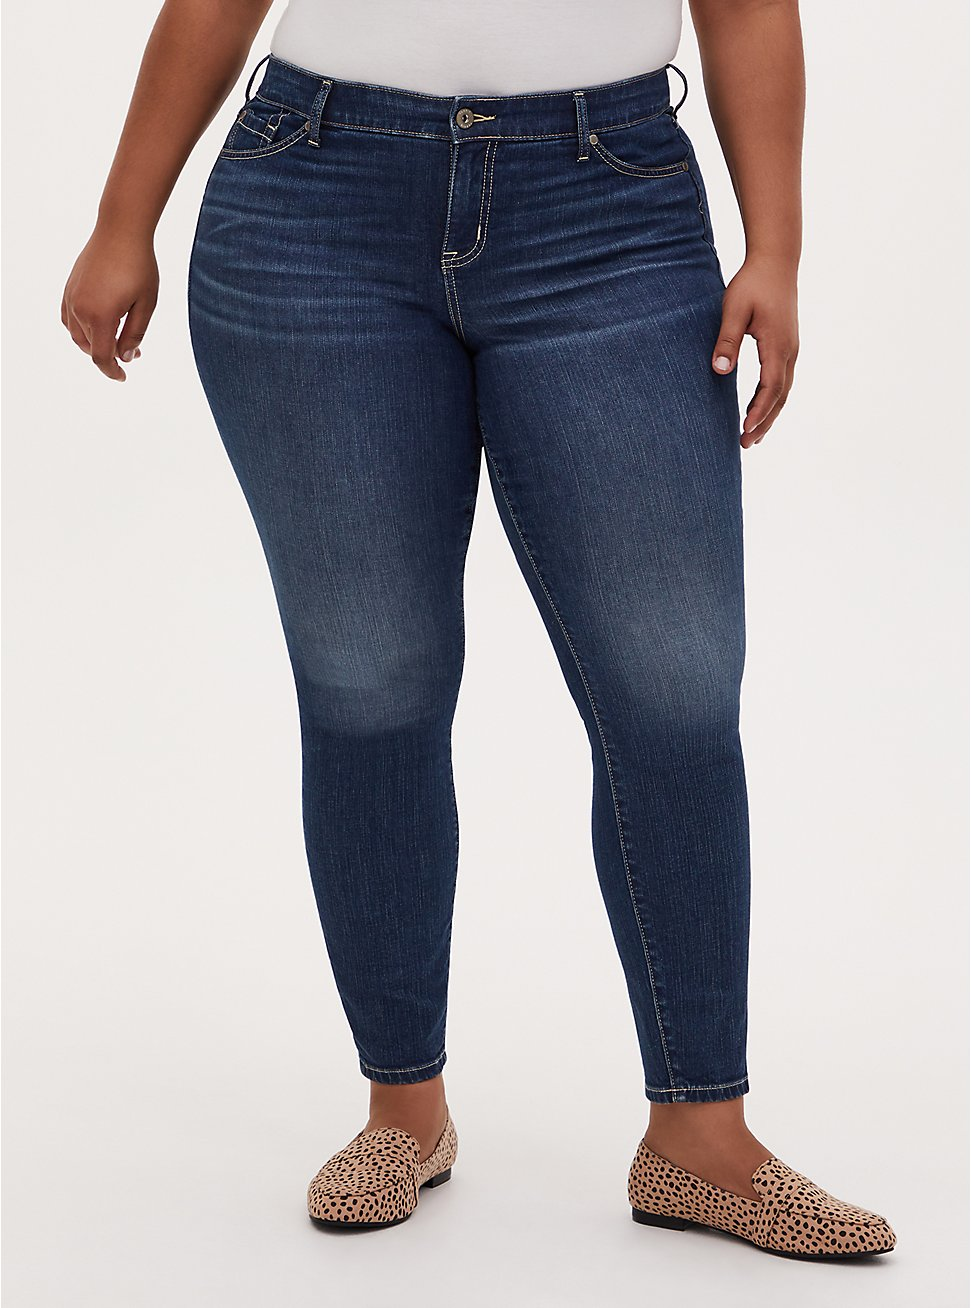 Mid Rise Skinny Jean - Vintage Stretch Medium Wash , BACK COUNTRY, hi-res